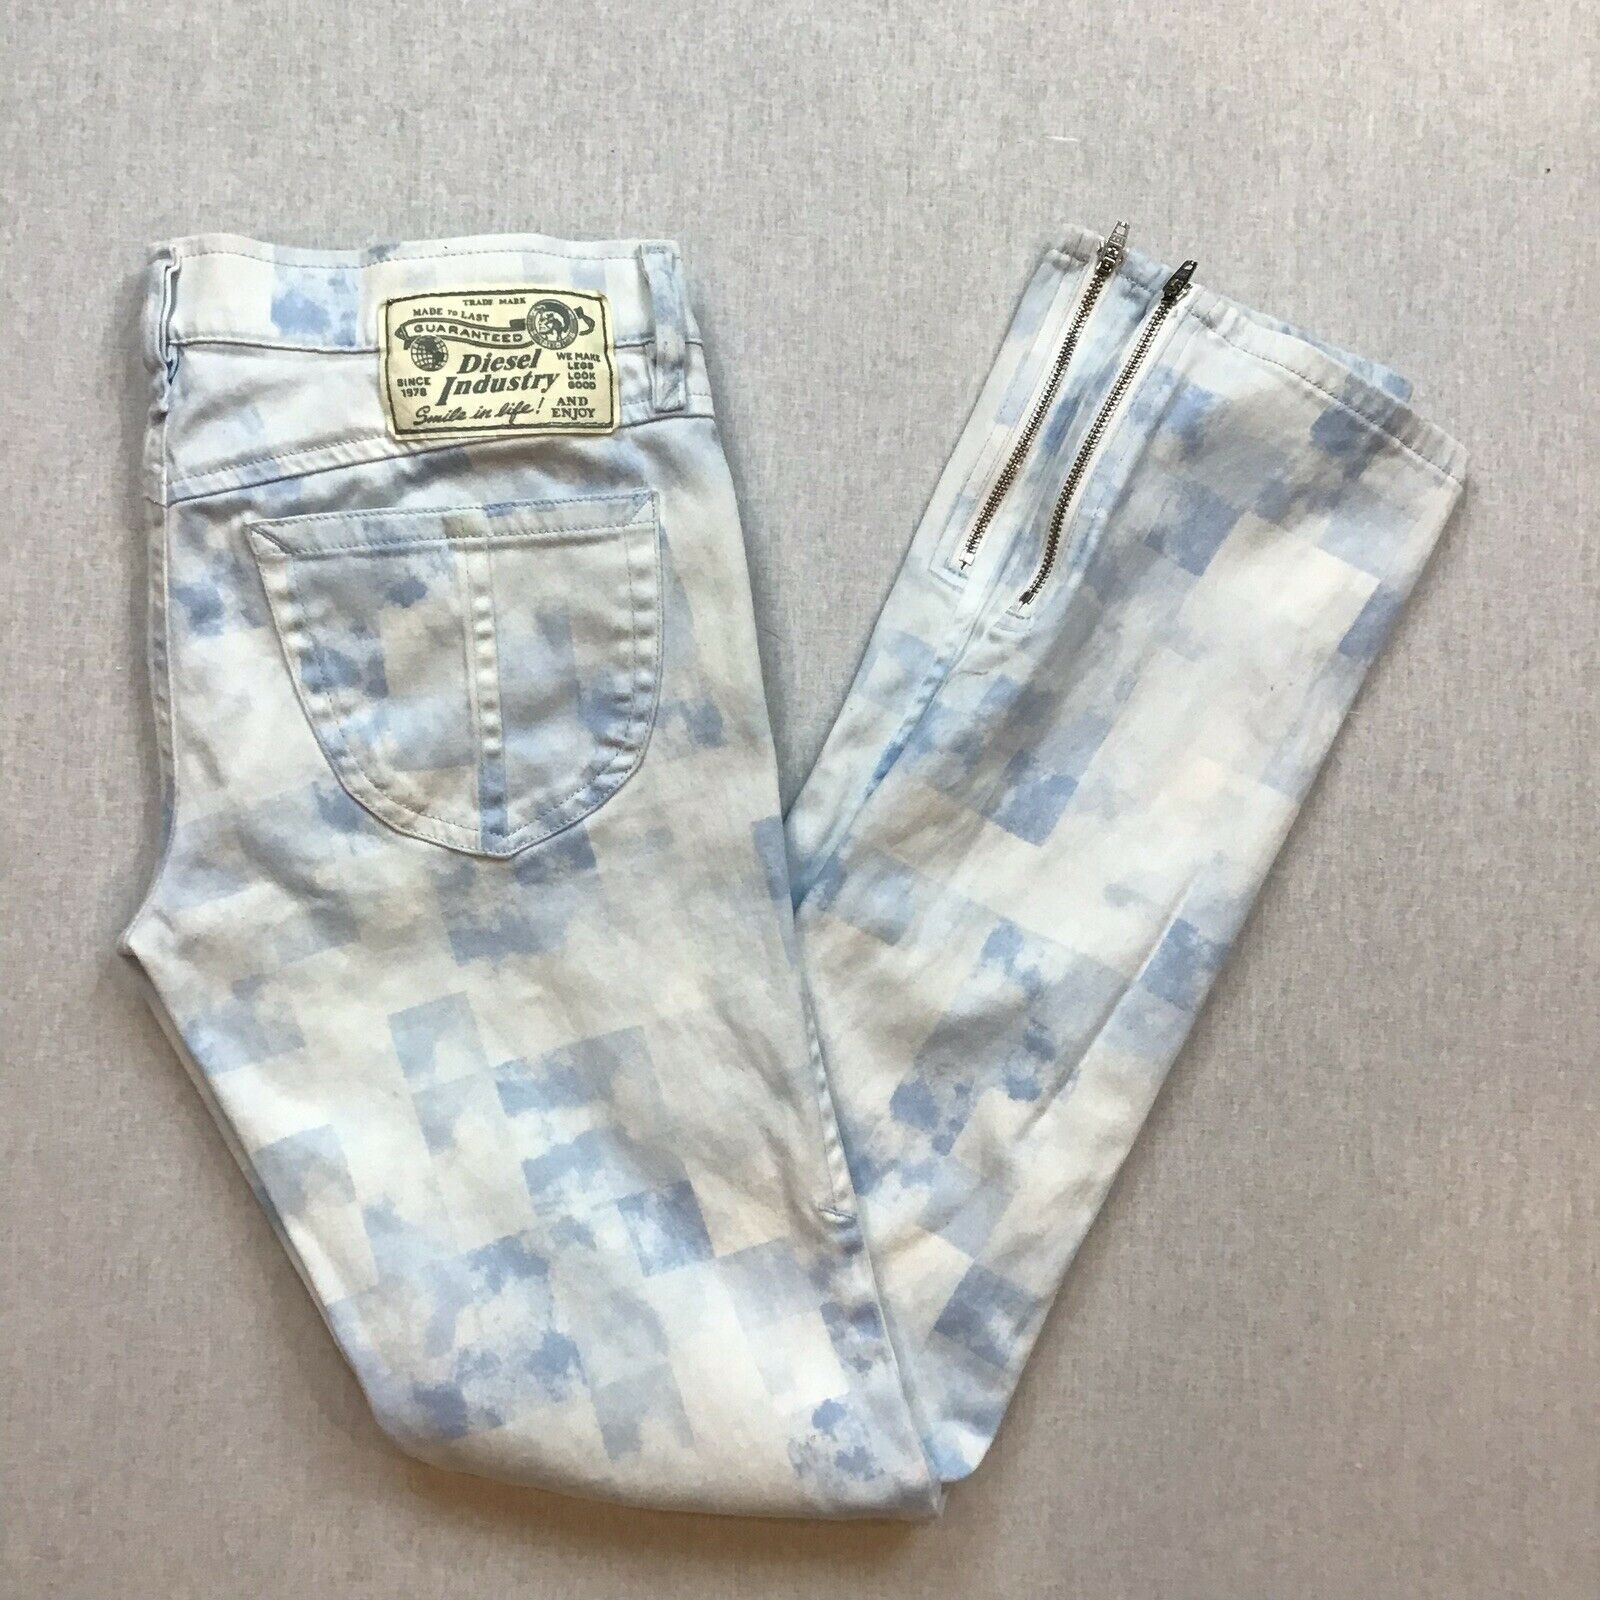 Diesel Jeans Size 28 Zivy Diesel Sample Jeans bluee and White Printed Jeans